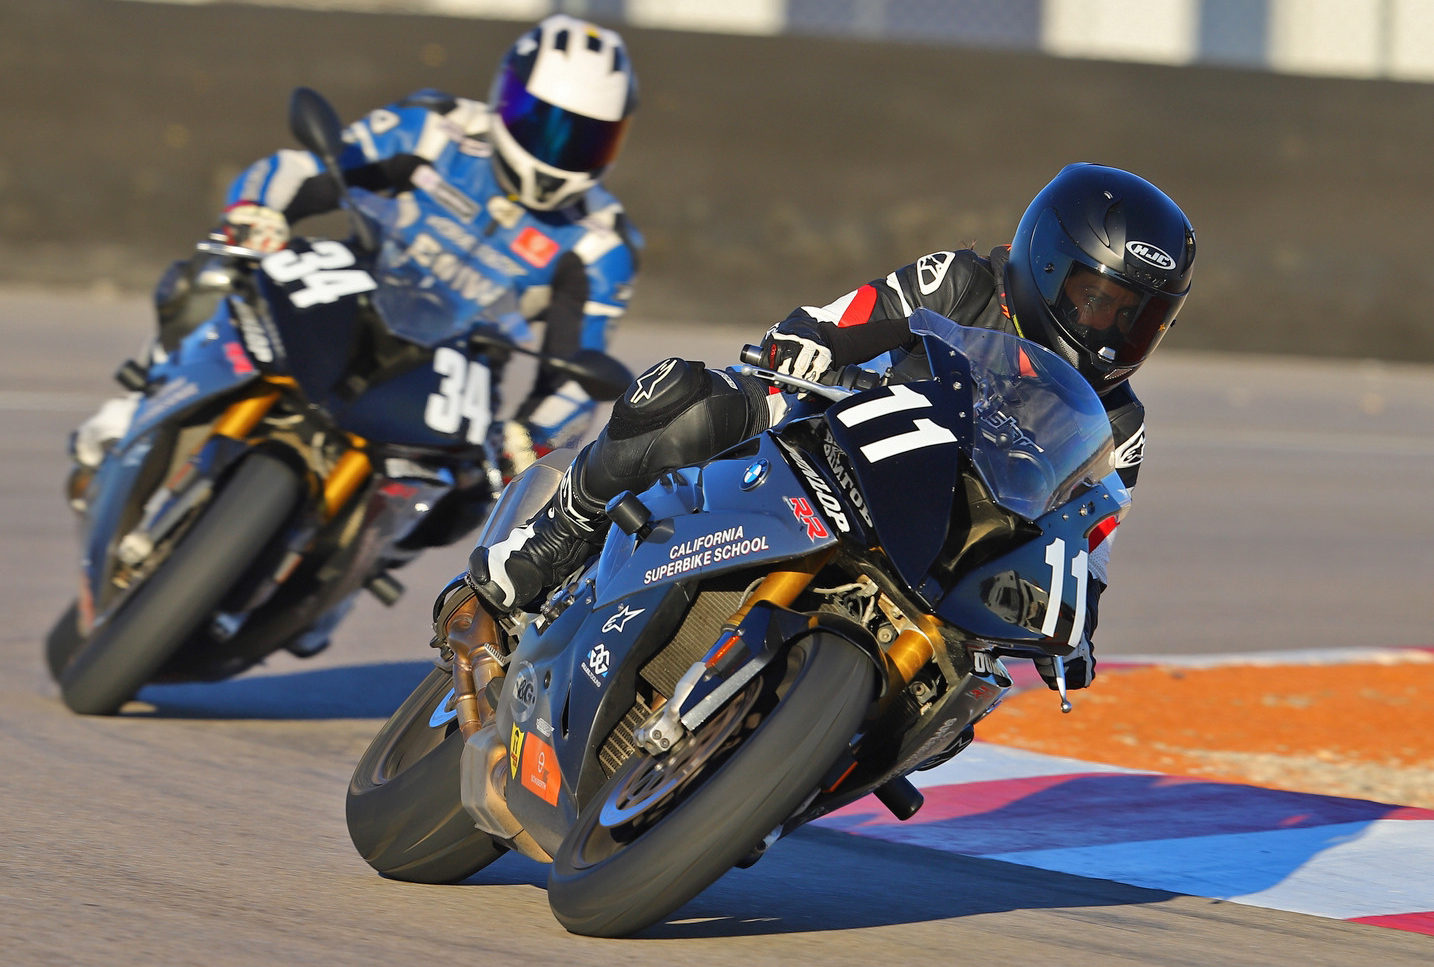 A California Superbike School instructor (34) follows a student (11) on track. Photo by etechphoto.com, courtesy of California Superbike School.